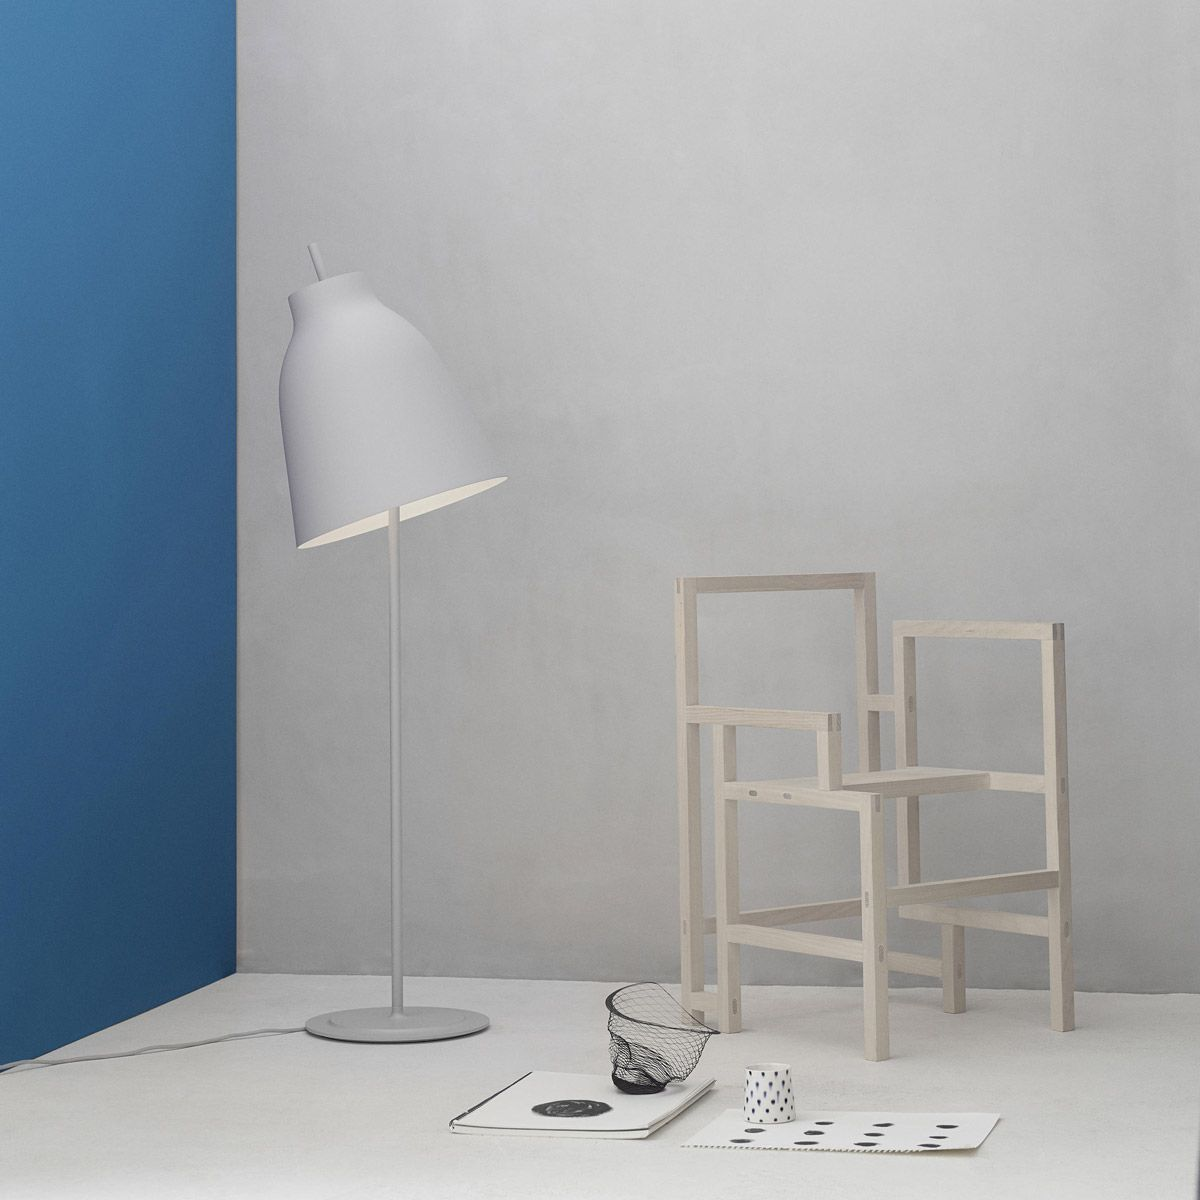 Matt gray Caravaggio lamp by Cecilie Manz edited by LightYears